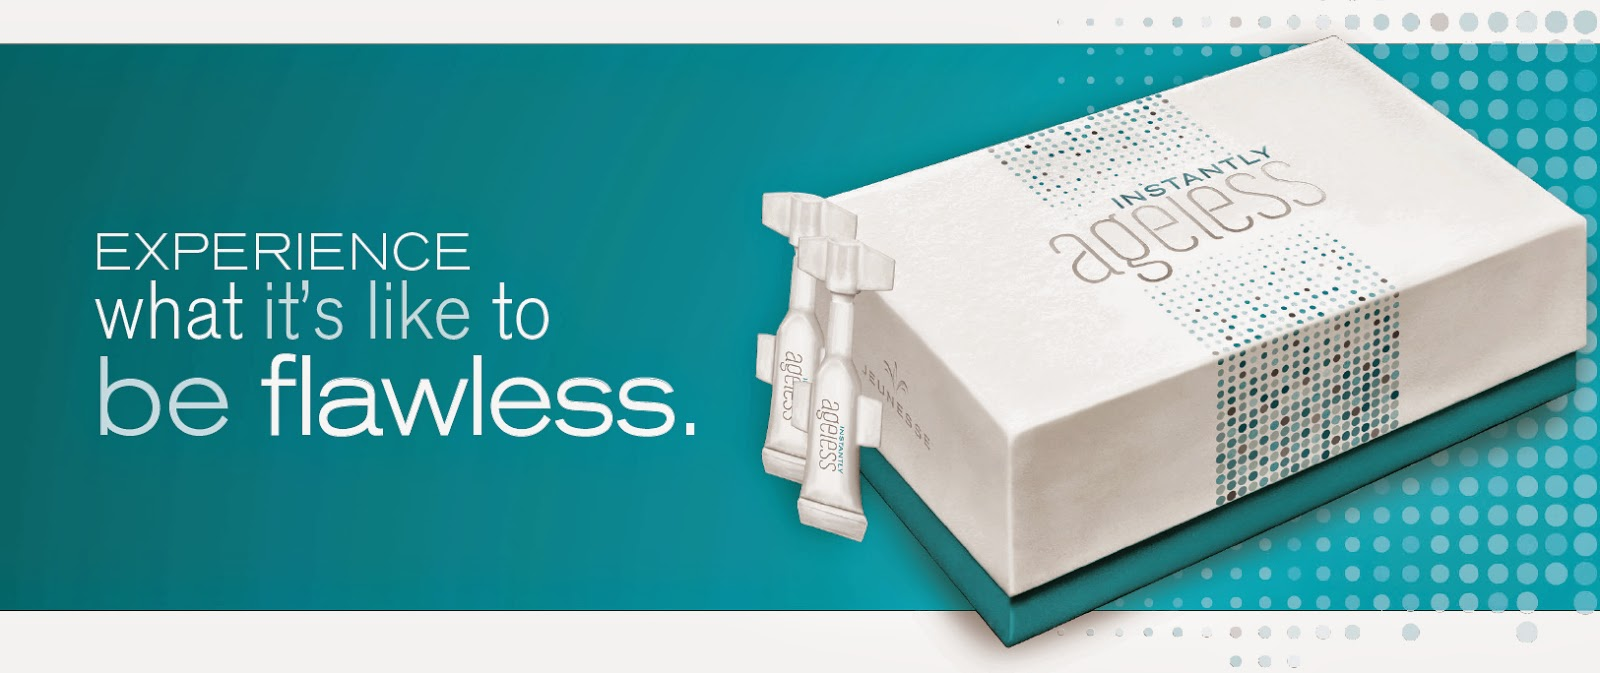 http://www.skinreborn.jeunesseglobal.com/products.aspx?p=INSTANTLY_AGELESS